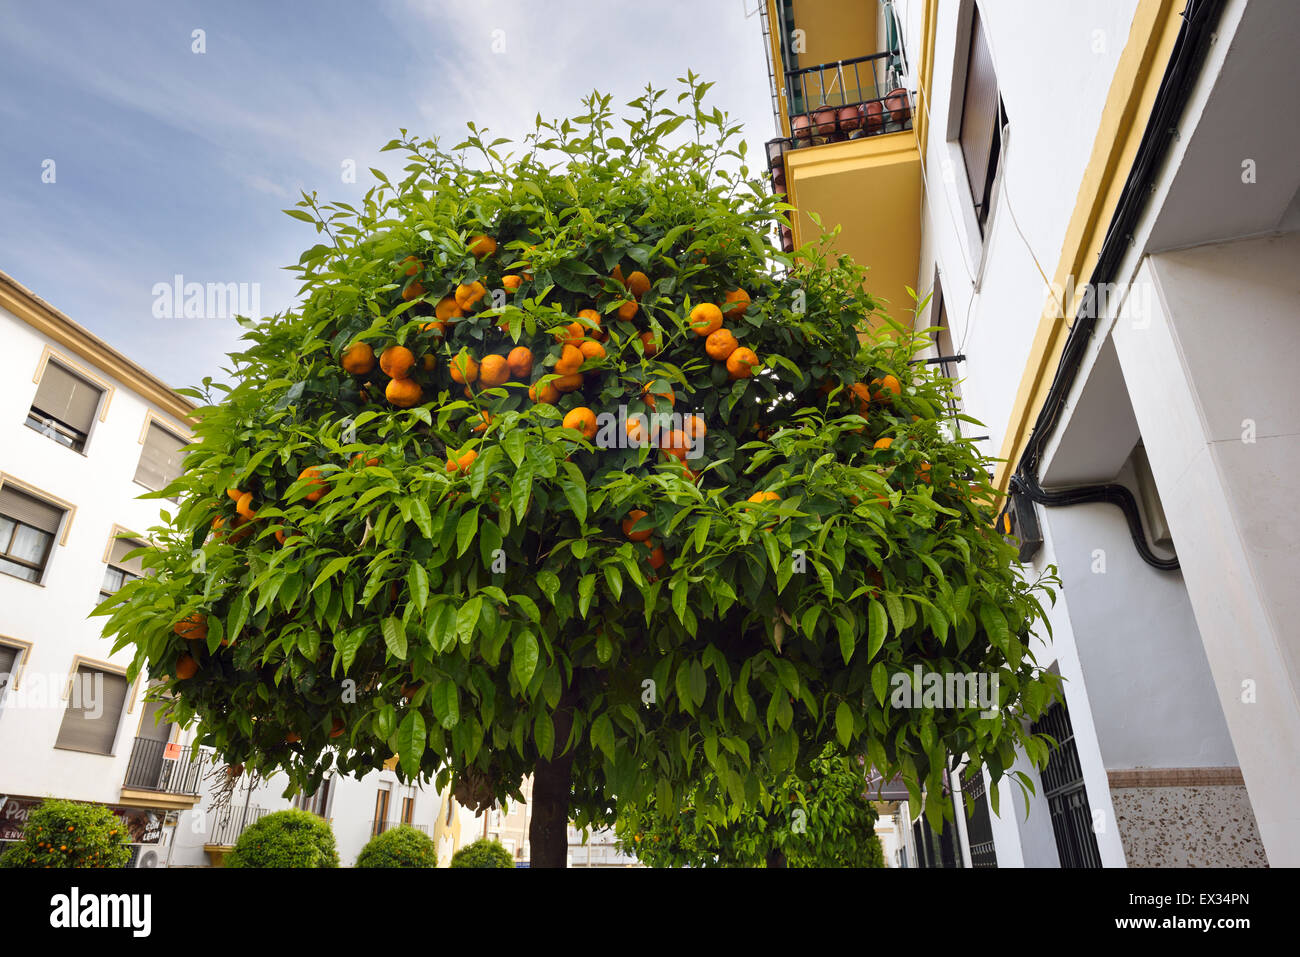 Ornamental bitter Seville orange trees lining a street in Ronda Andalusia Spain - Stock Image